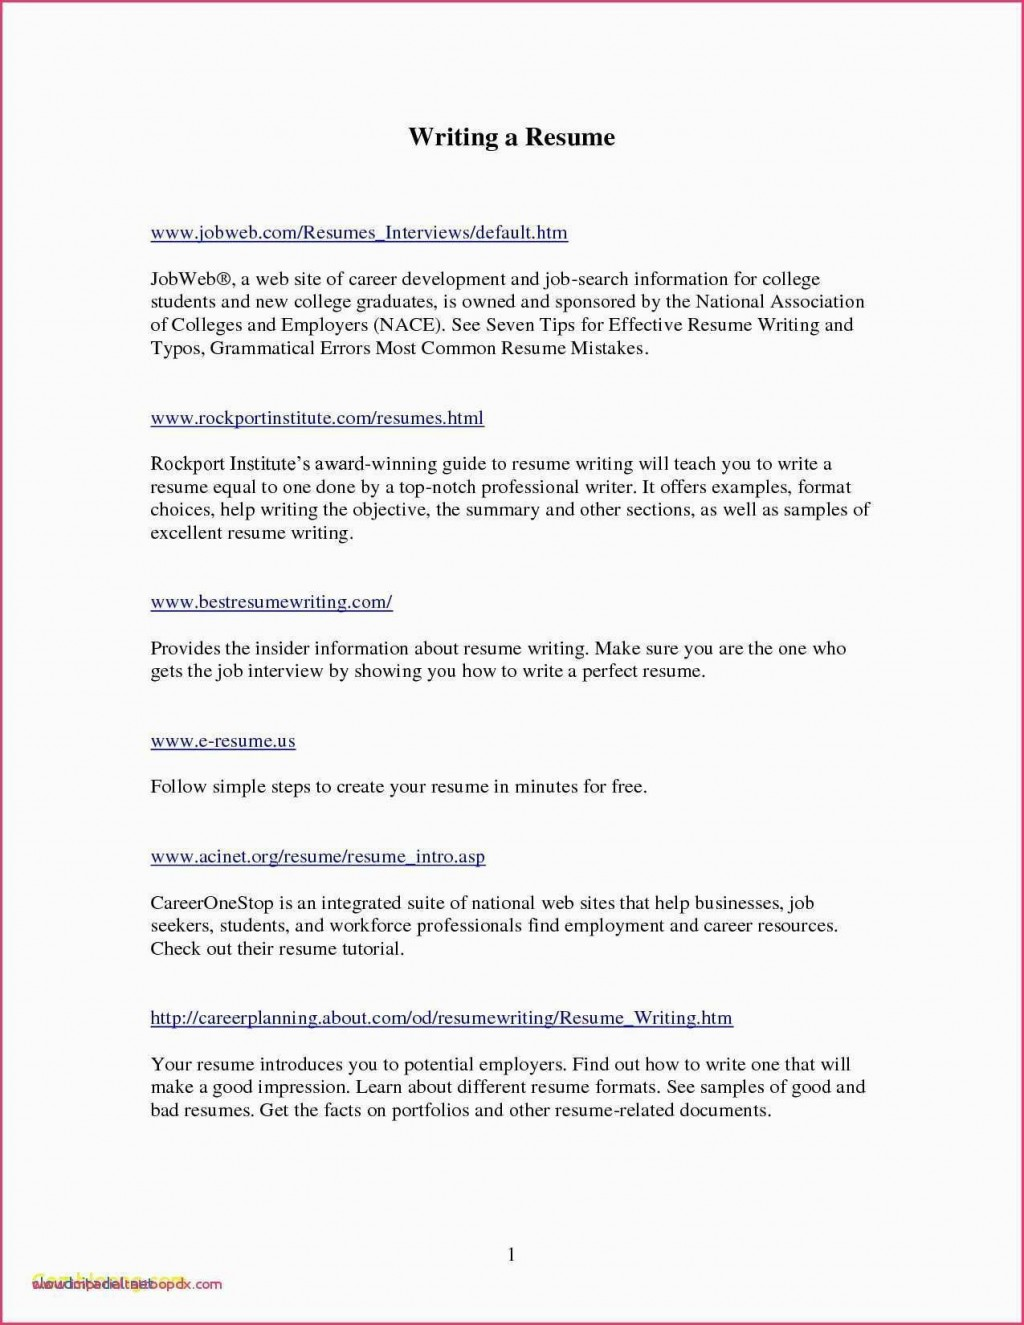 021 Apa Letter Format Template New Formal Outline Research Paper Mla Amazing Sample Examples Large